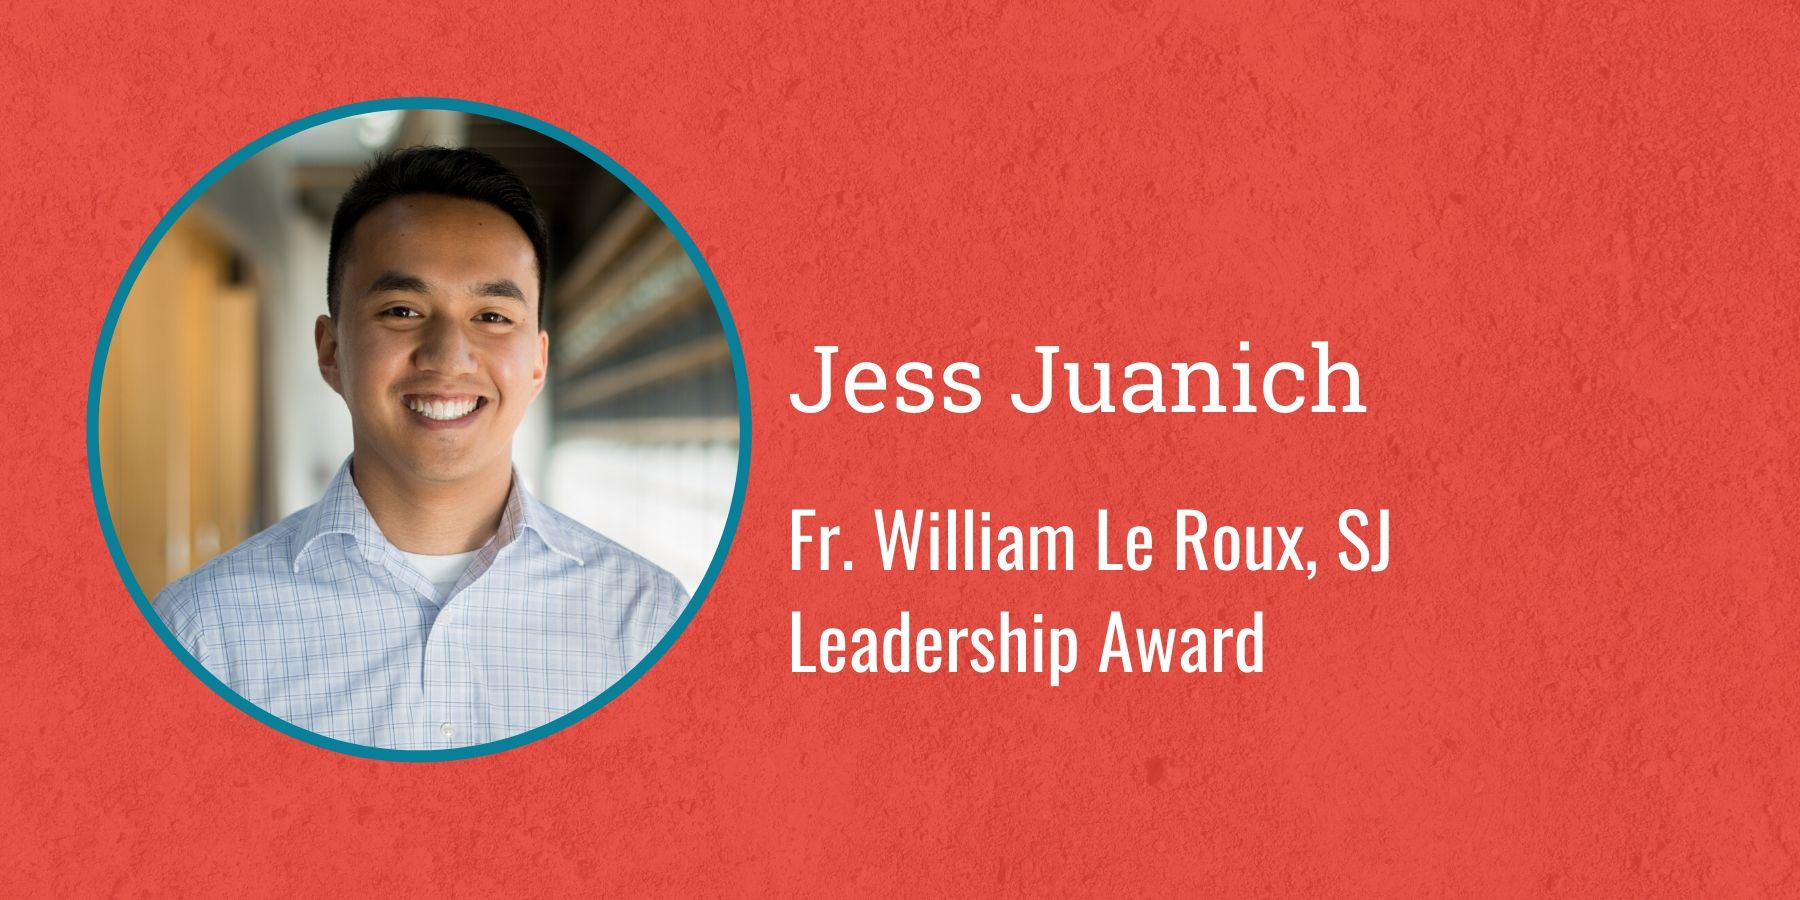 Photo of Jess Juanich and text Jess Juanich, Father William Le Roux SJ Leadership Award